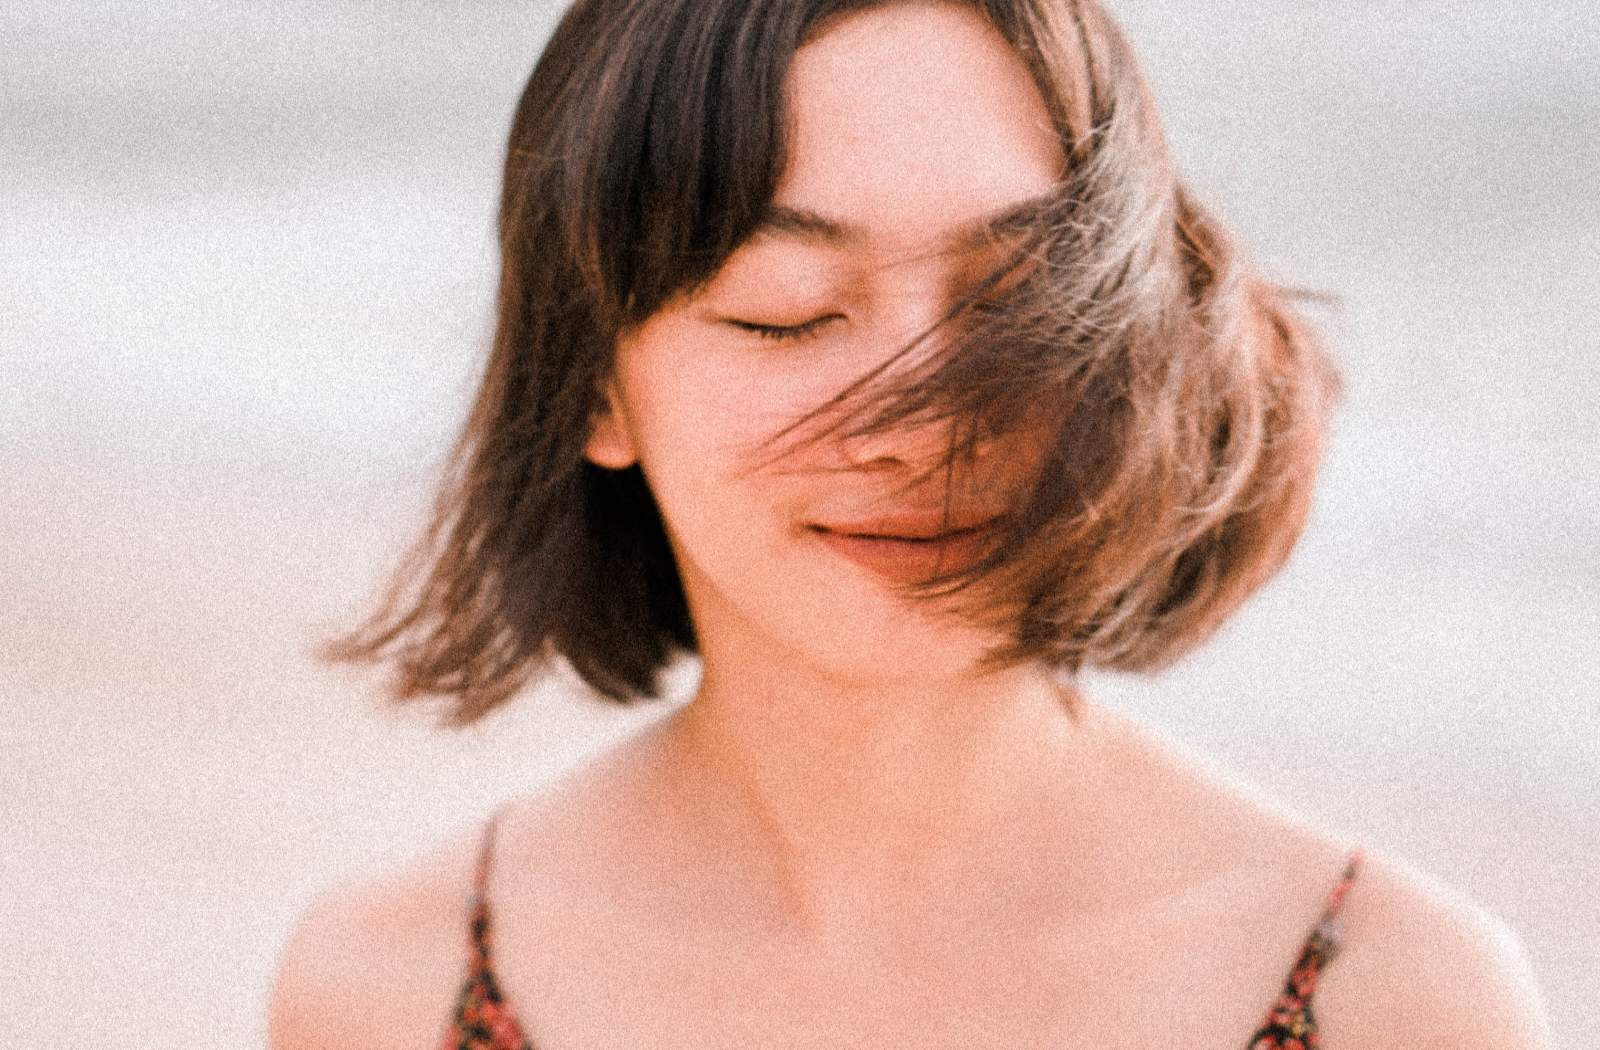 a beautiful lady with short hair closing her eyes while feeling the fresh air